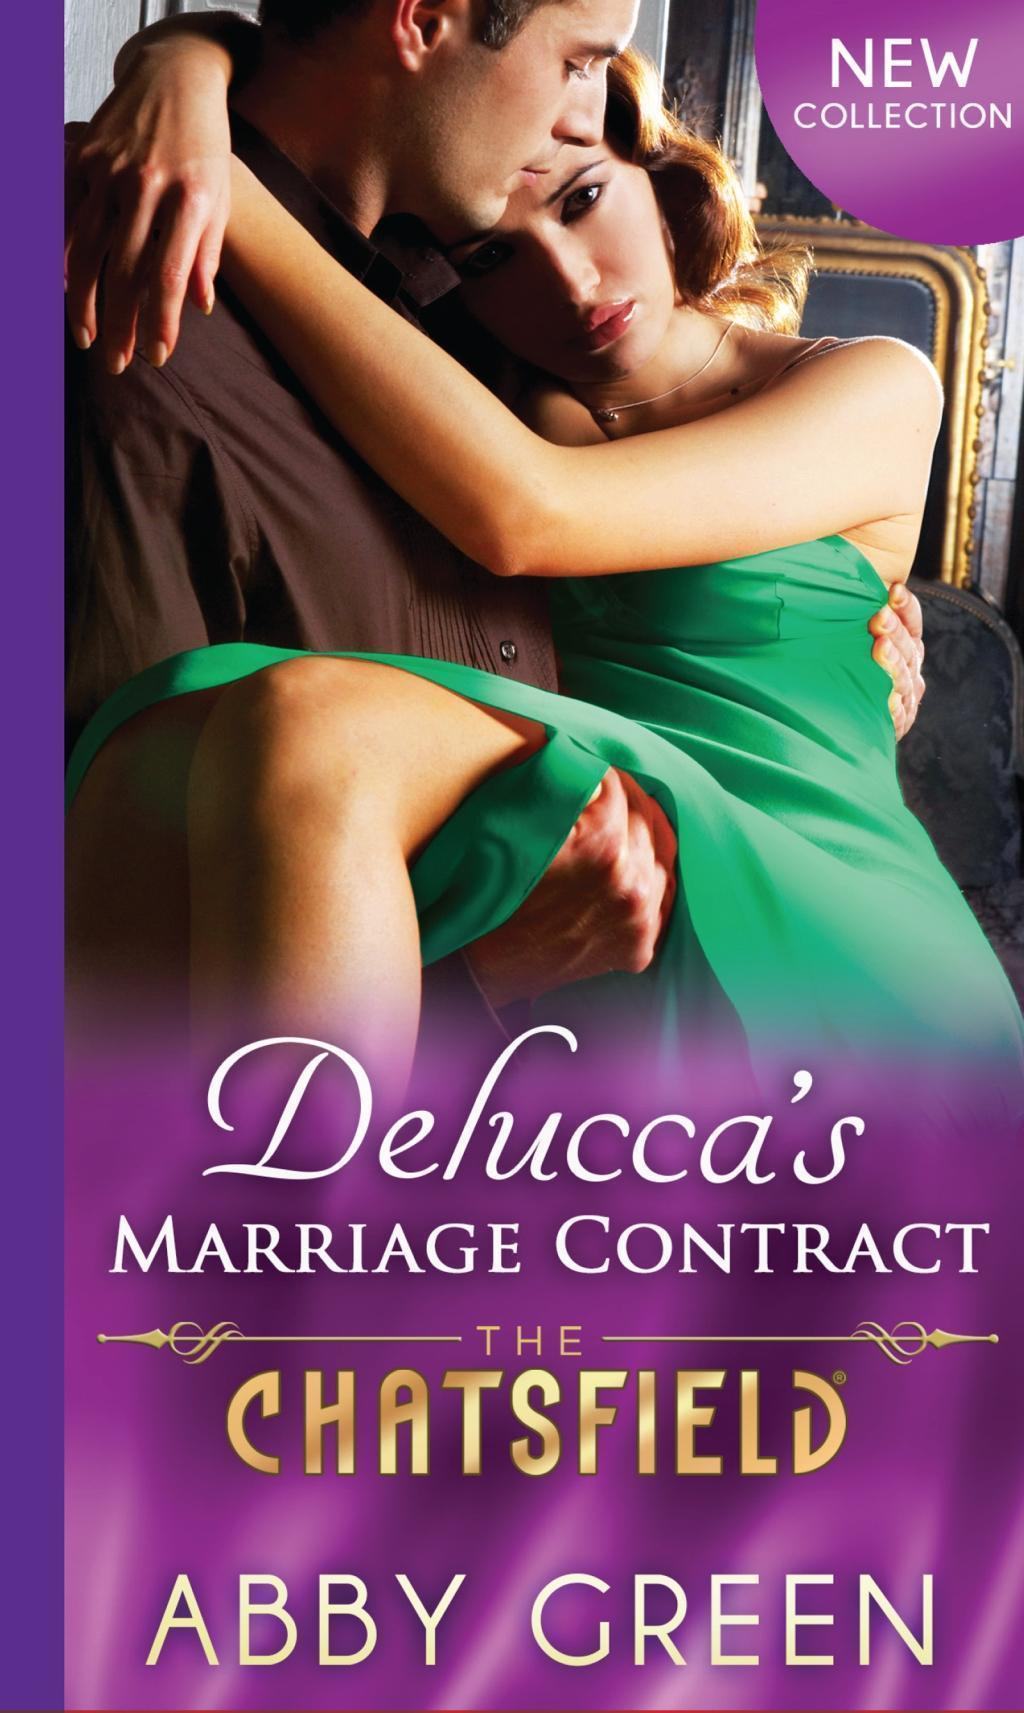 Delucca's Marriage Contract (Mills & Boon M&B) (The Chatsfield, Book 10)